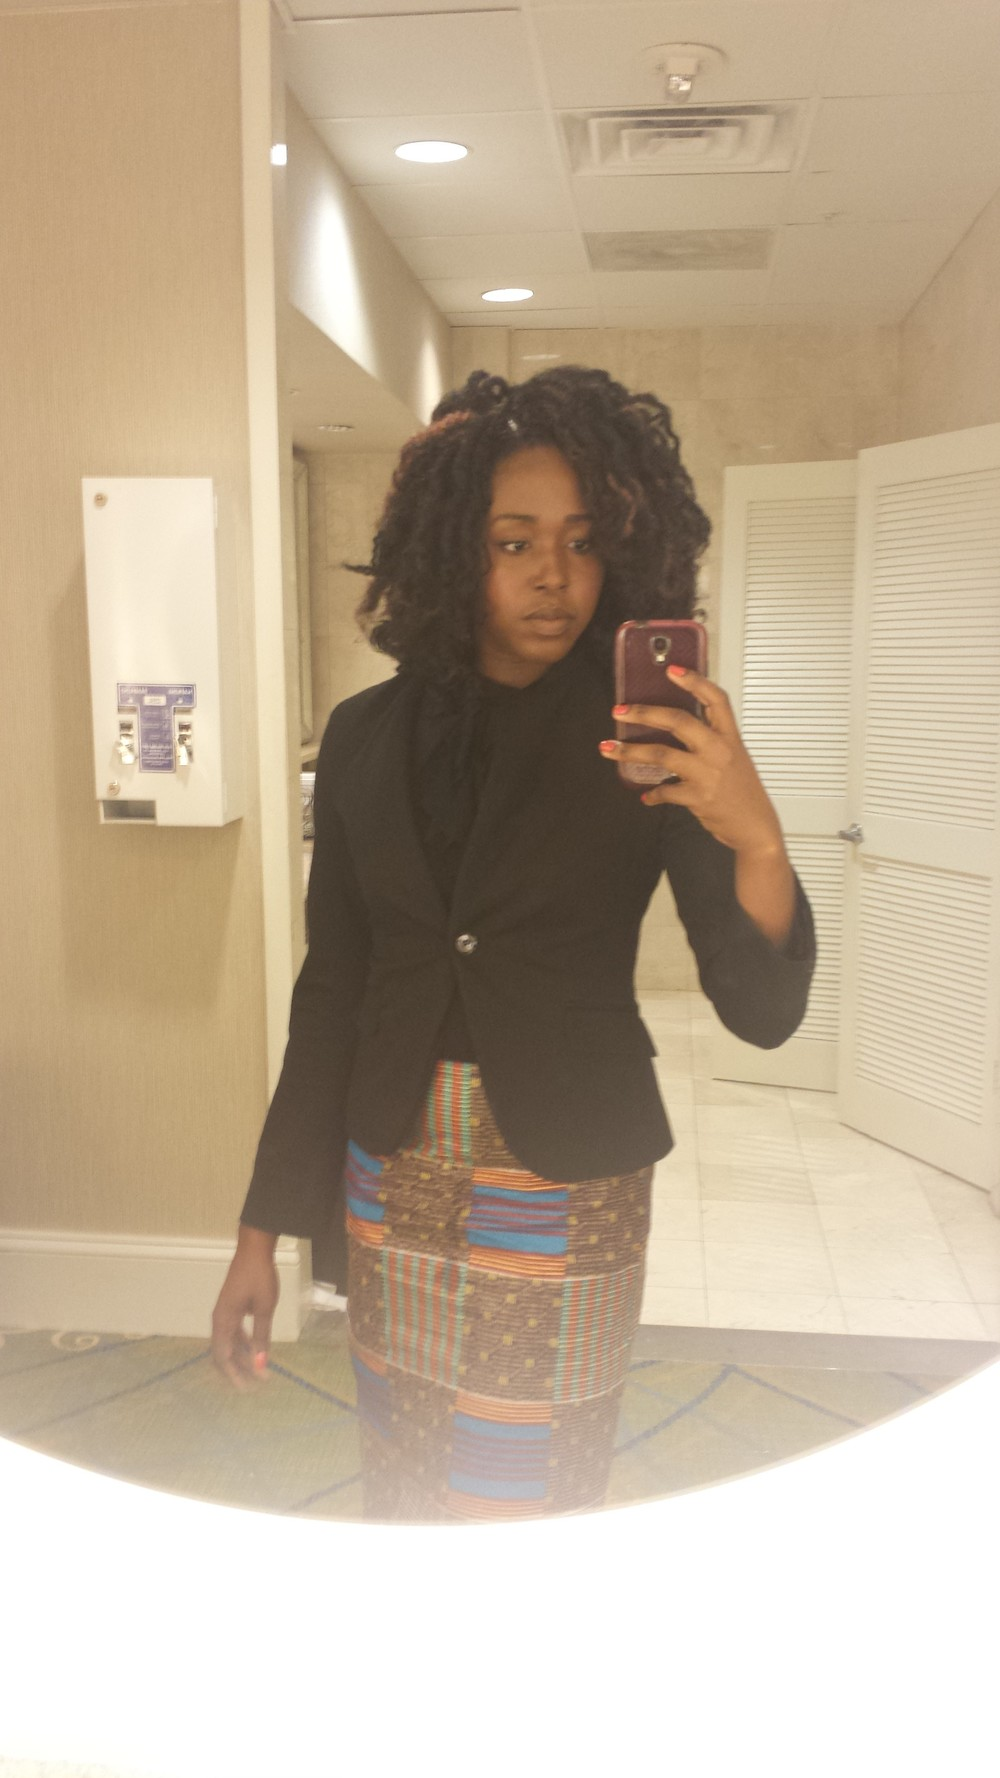 How I wore it on most days. O, and I loooove that pencil skirt!